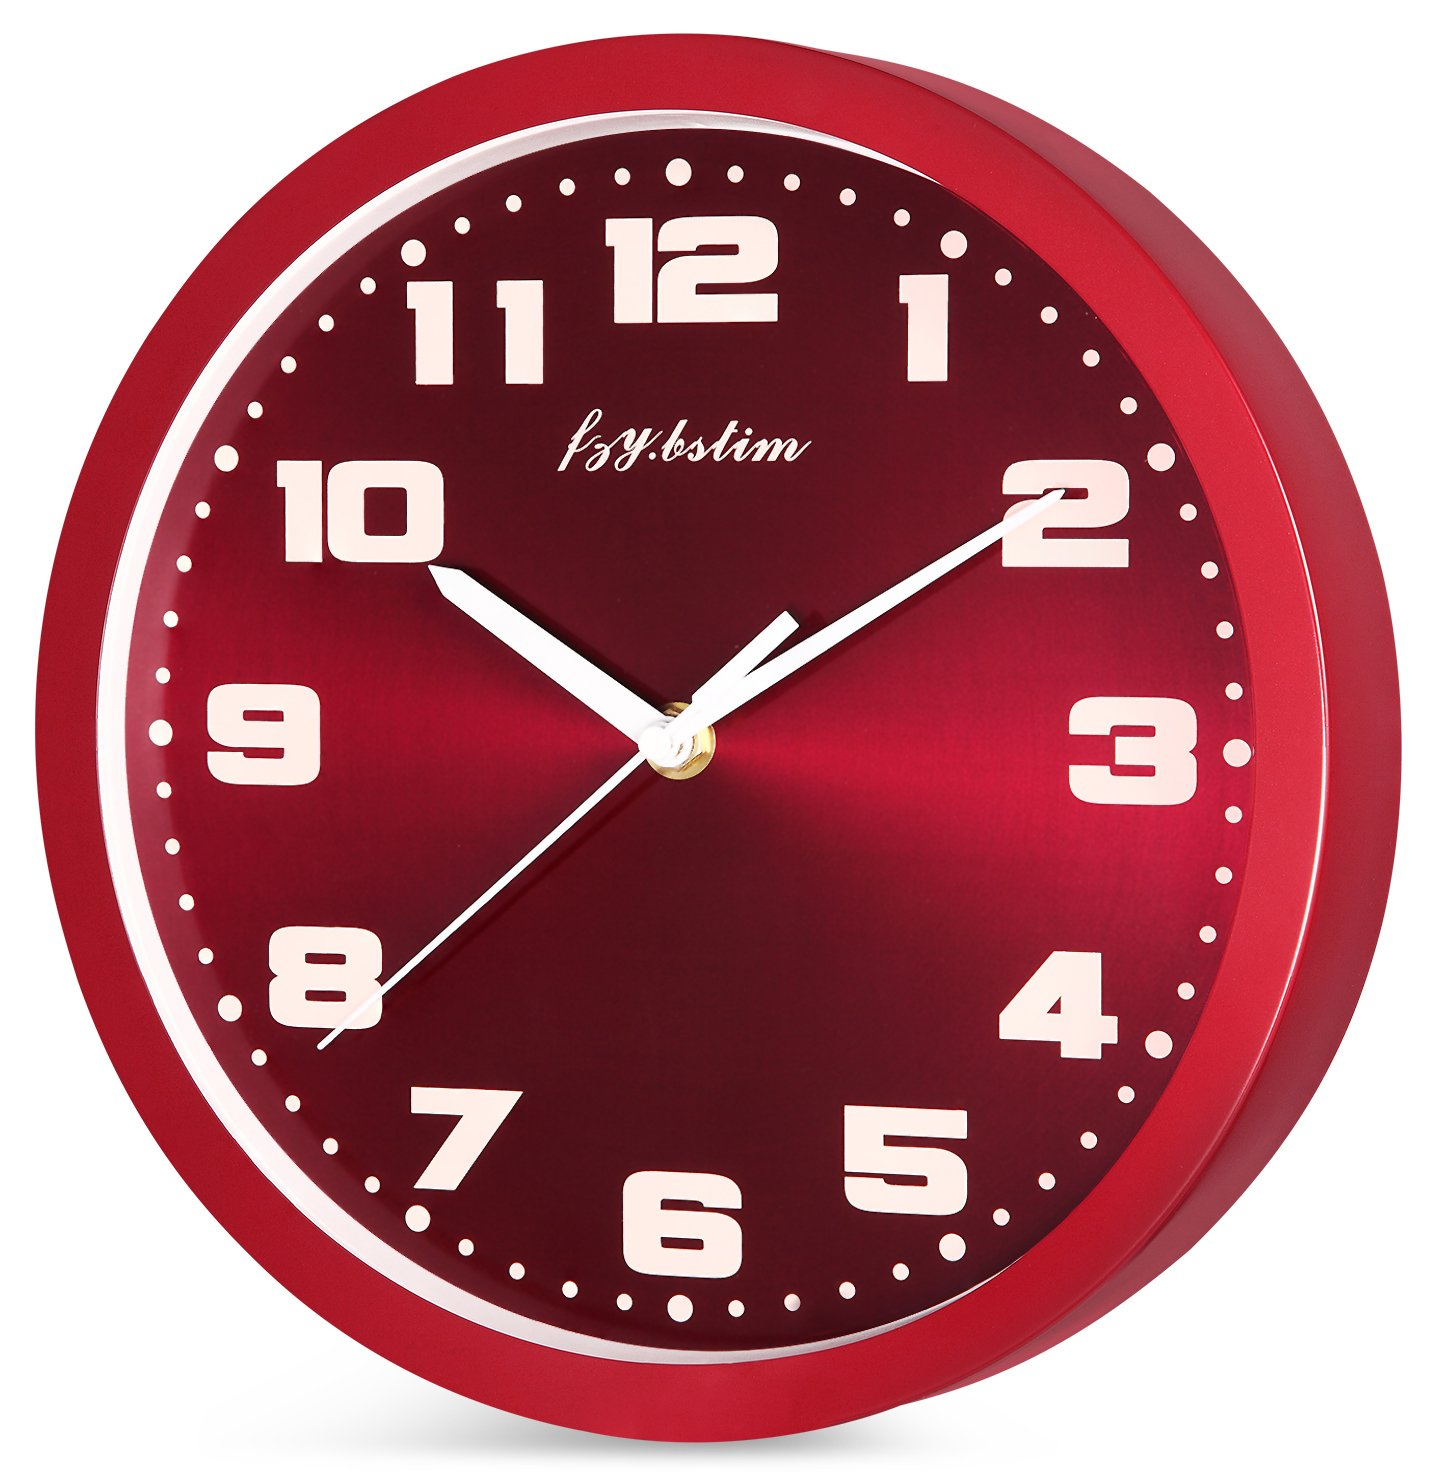 Fzy.bstim Silent Non-Ticking Wall Clock Battery Operated,10 Inch Modern Round Living Room/Office/School/Kitchen Clock,Red - EASY TO READ WALL CLOCK : Large numbers and glass cover guarantees perfect view. SILENT NON TICKING WALL CLOCK : Super quality quartz sweep movement guarantees accurate time and absolutely silent environment. CLASSIC METAL FRAME AND DIAL FACE : Special and elegant design will make a stunning addition and is easy to match in any interior of your living room, kitchen, bedroom or any part of your house. - wall-clocks, living-room-decor, living-room - 71W0stzZC0L -